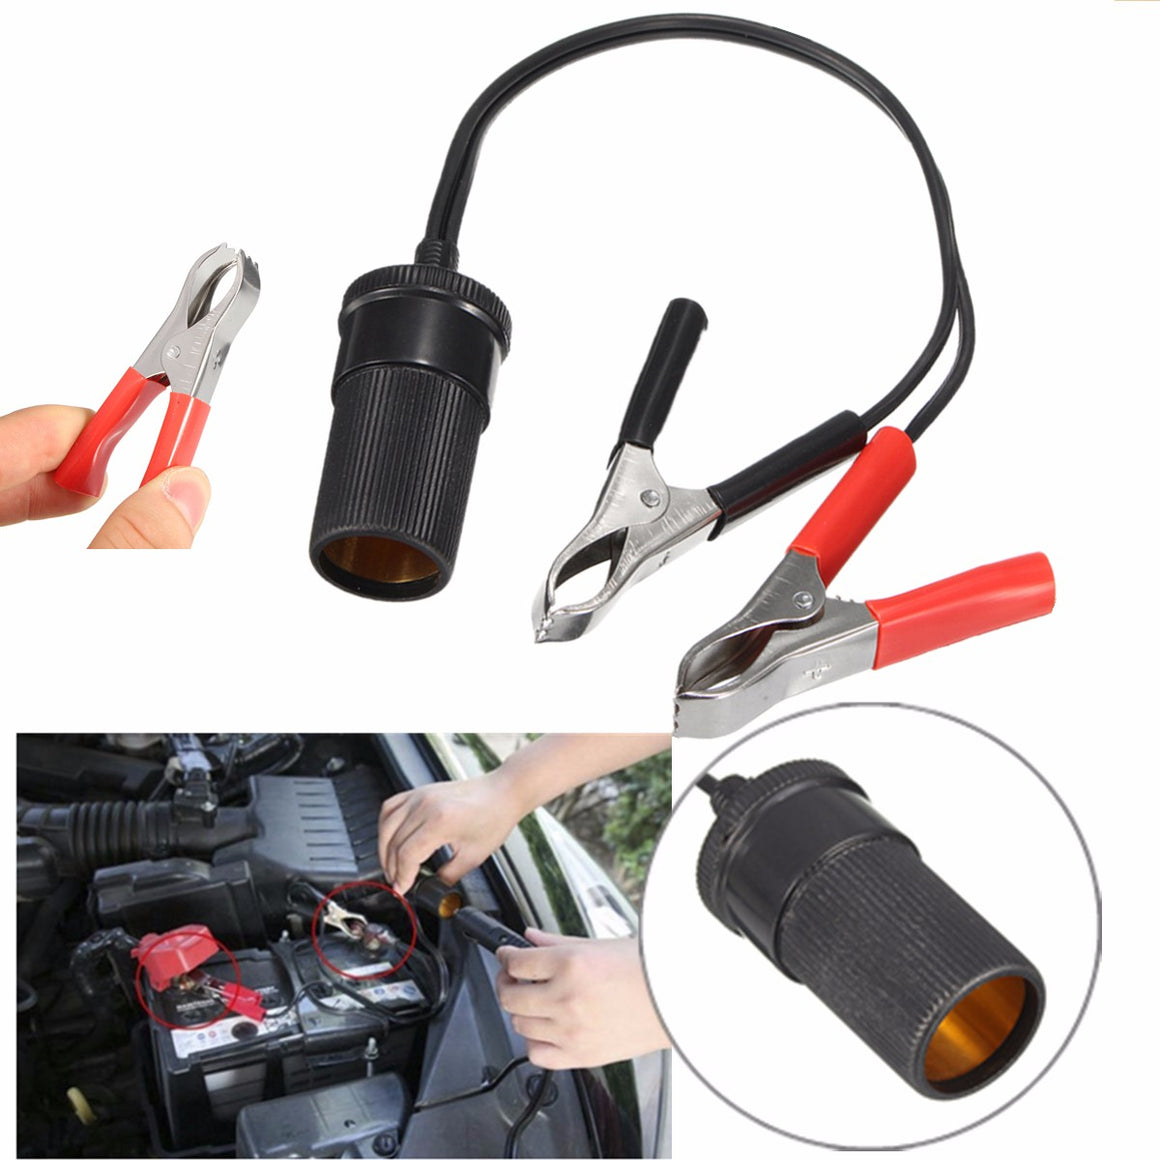 ** SPECIAL ** Cigarette lighter socket with alligator clips 12V